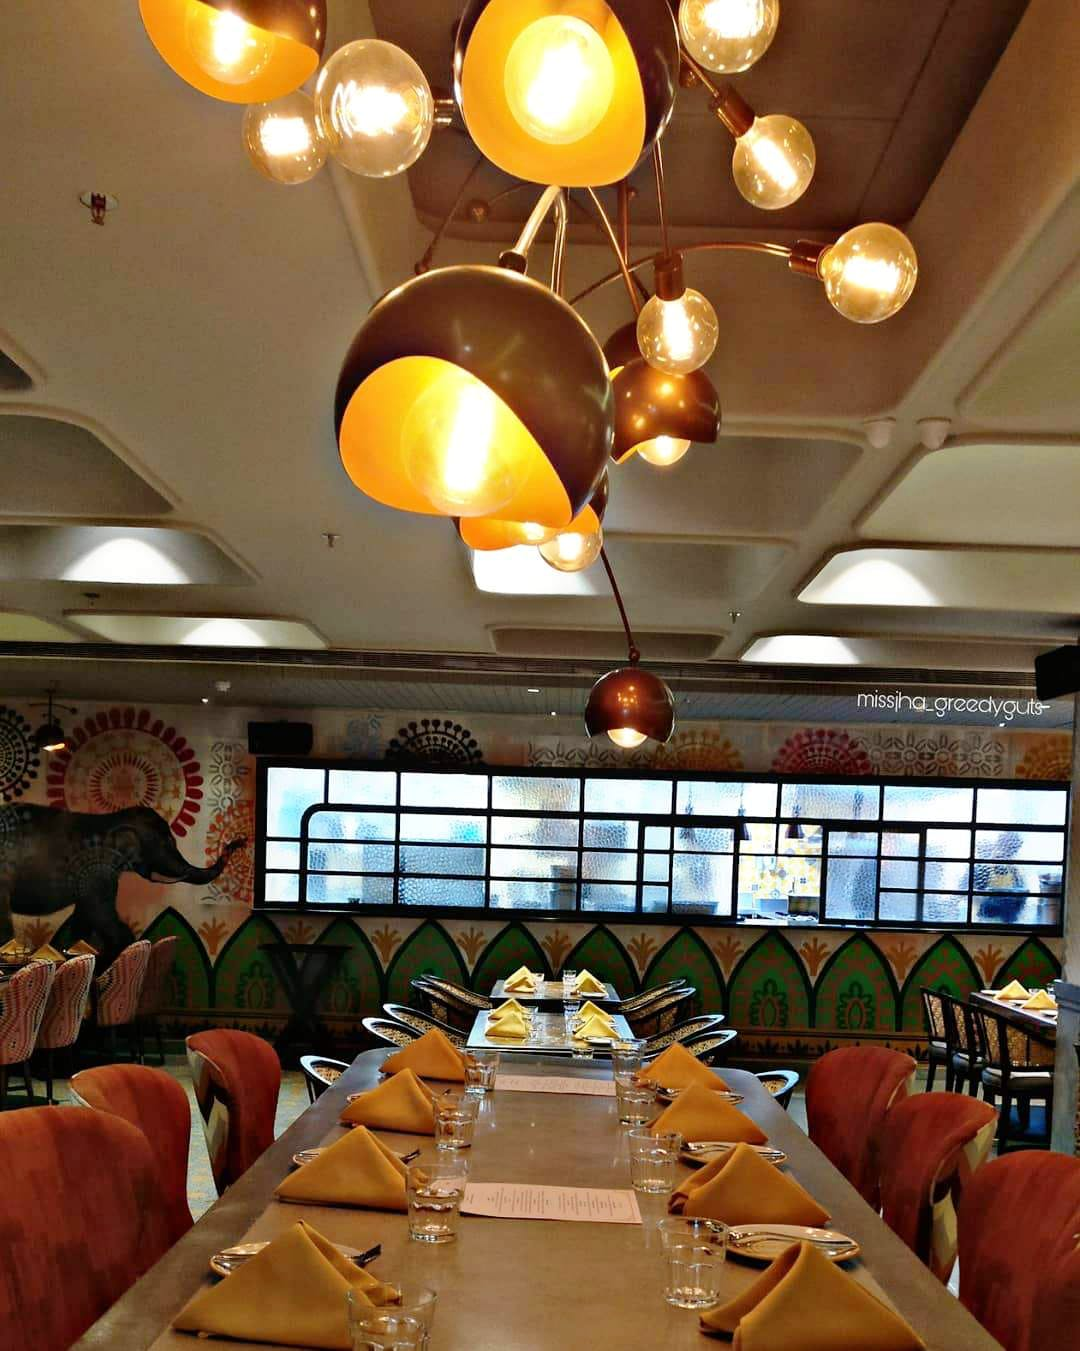 Restaurant,Lighting,Ceiling,Interior design,Building,Room,Function hall,Architecture,Table